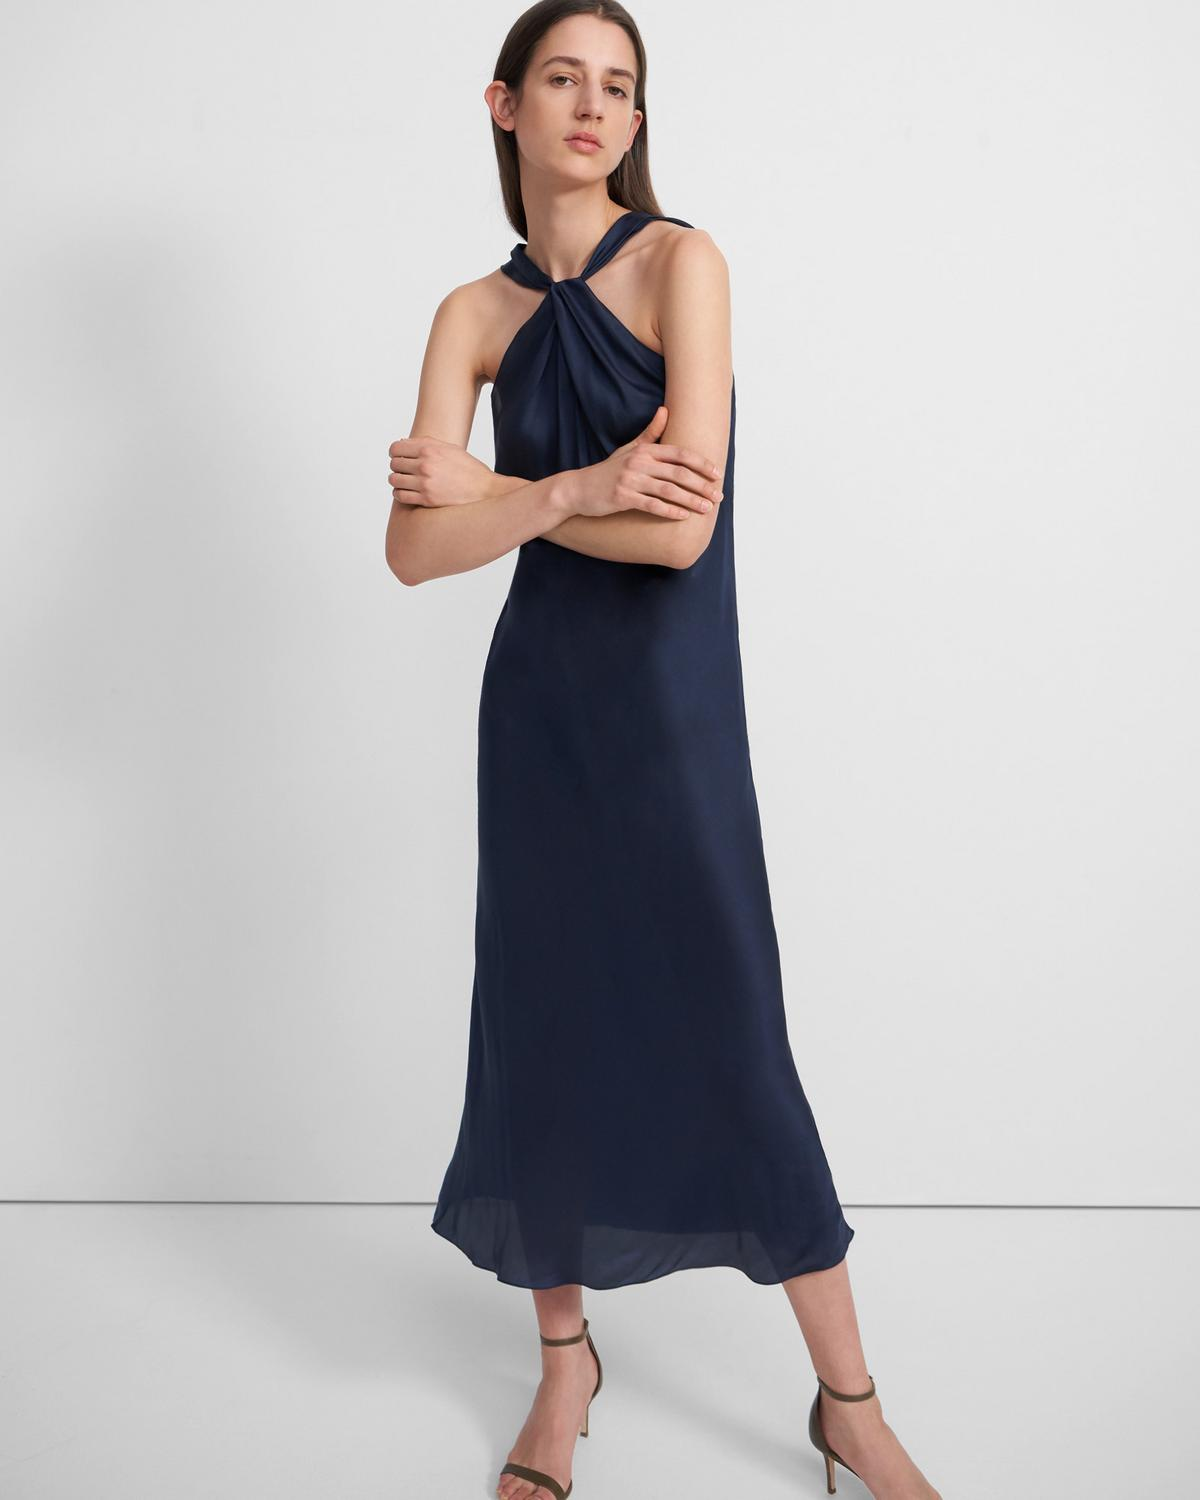 Twist Slip Dress in Slinky Twill